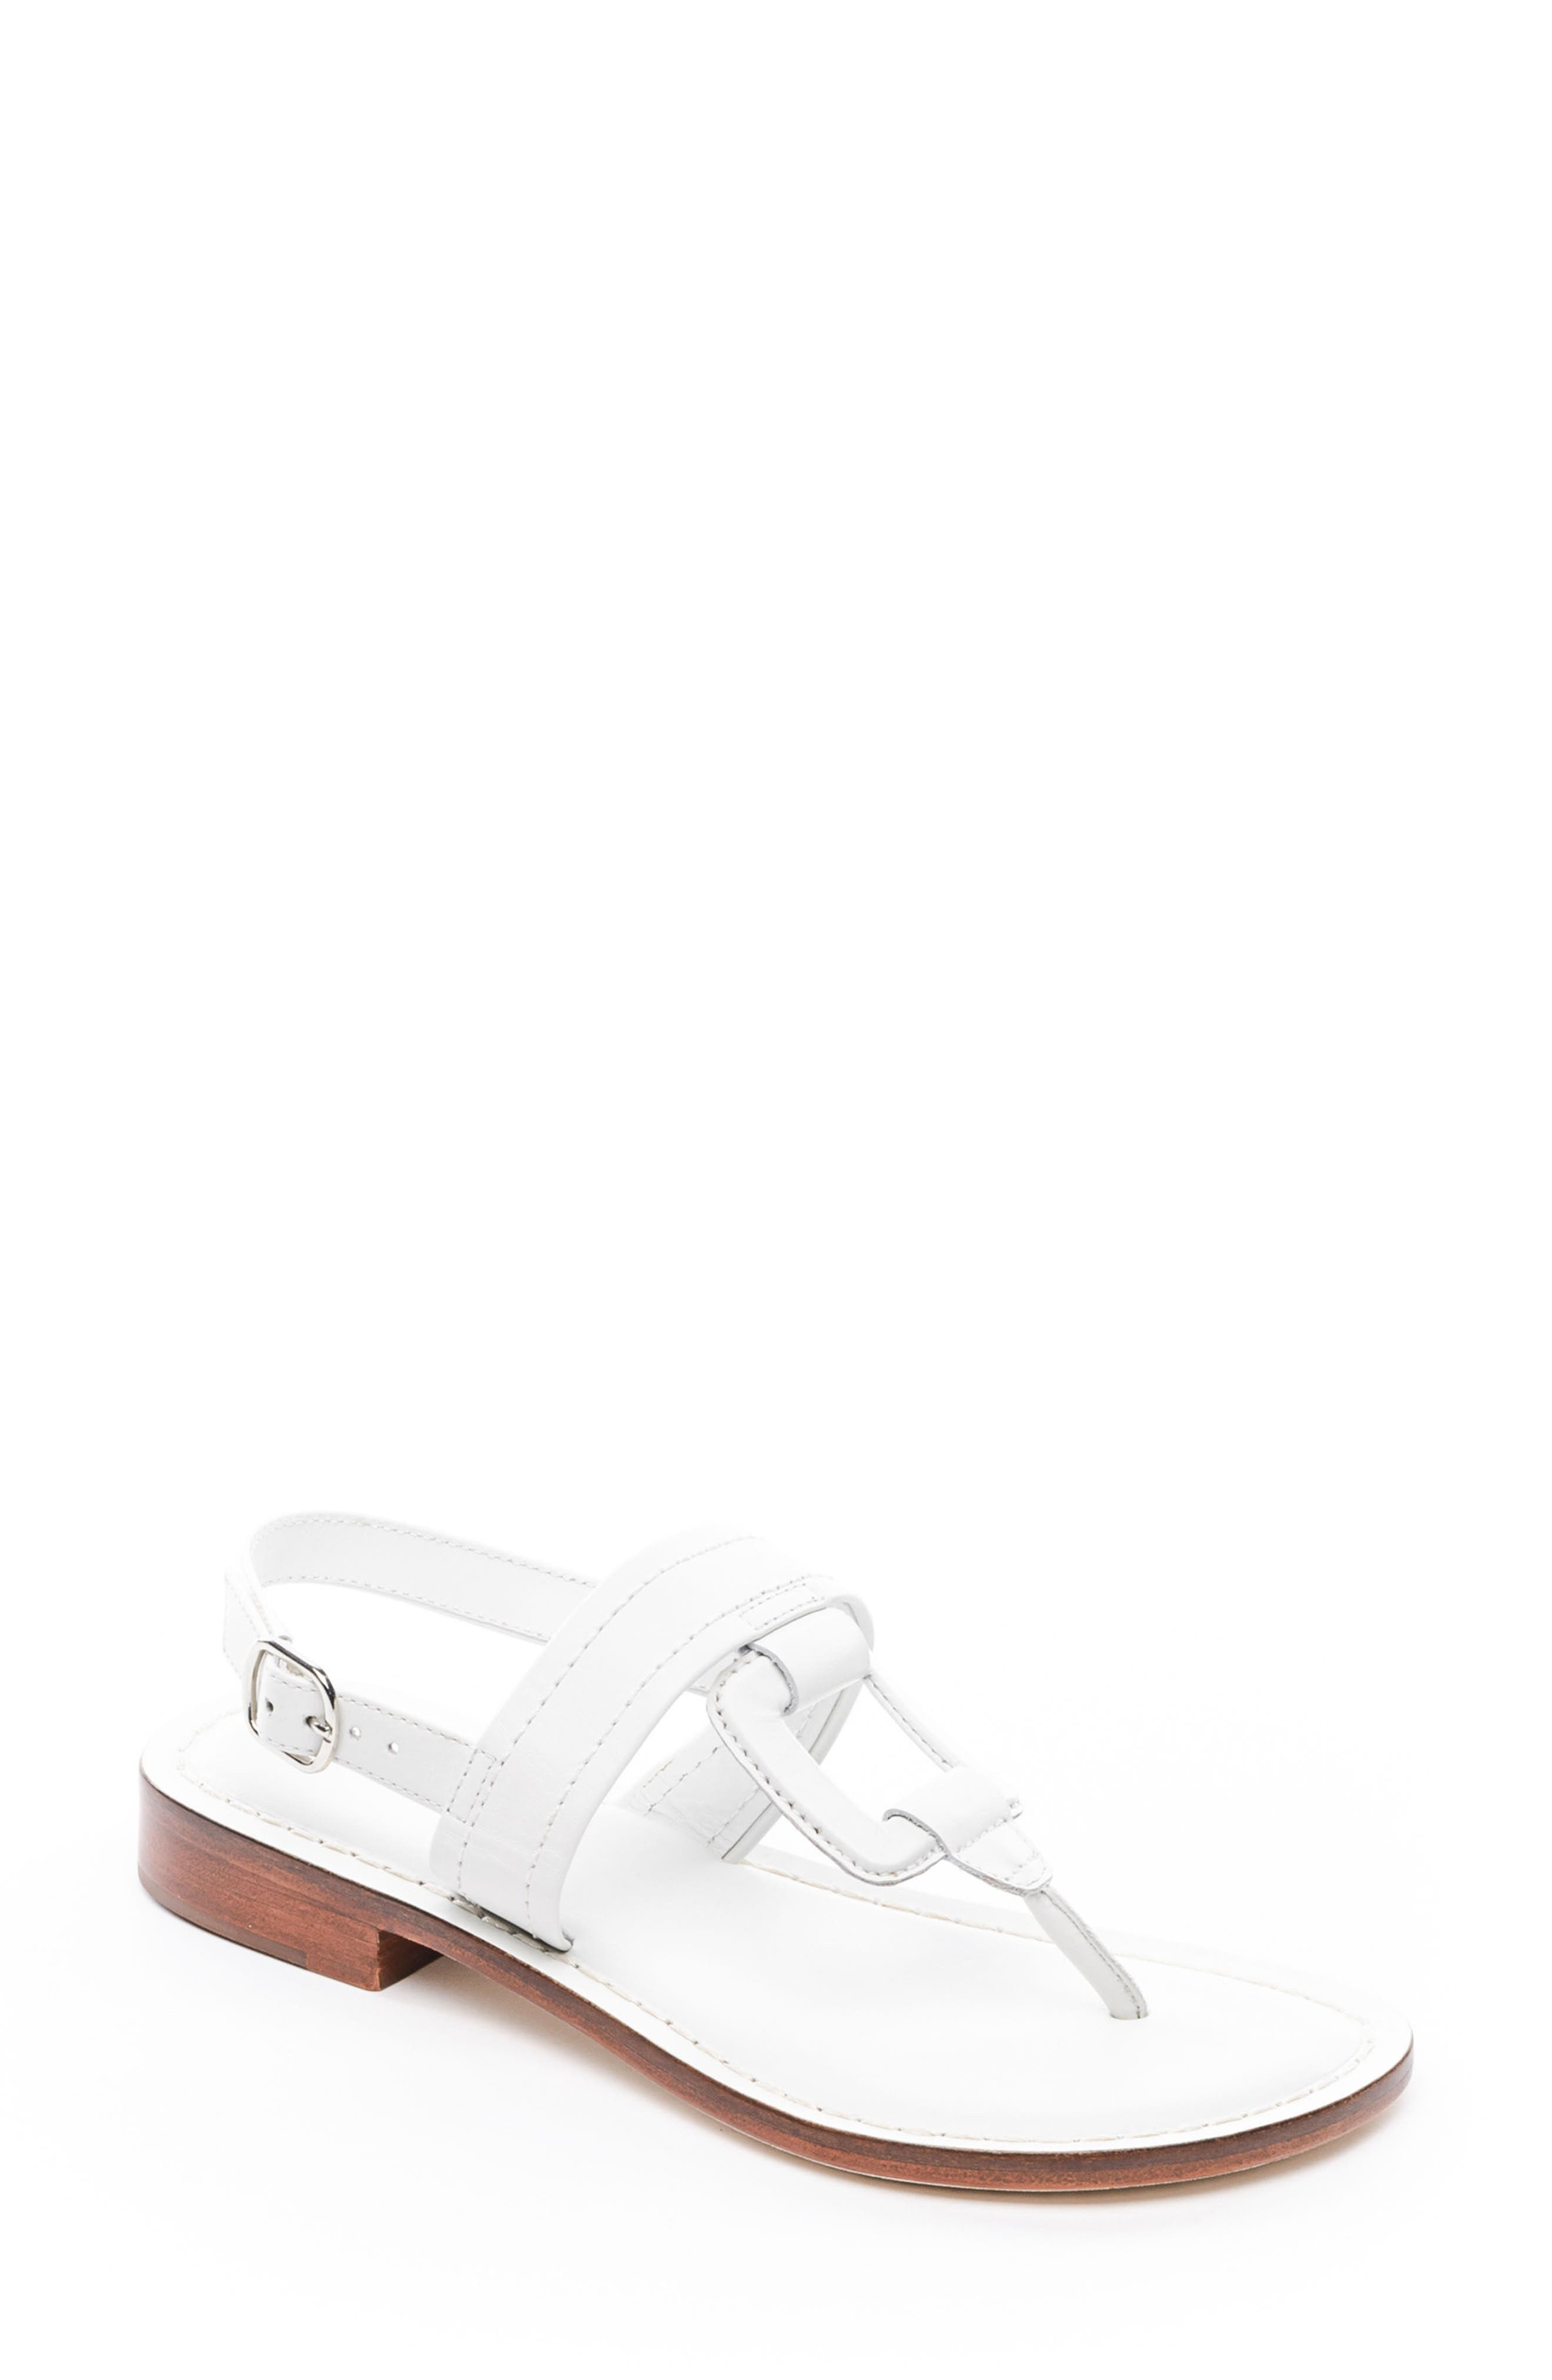 Bernardo Tegan Sandal,                             Main thumbnail 1, color,                             WHITE LEATHER